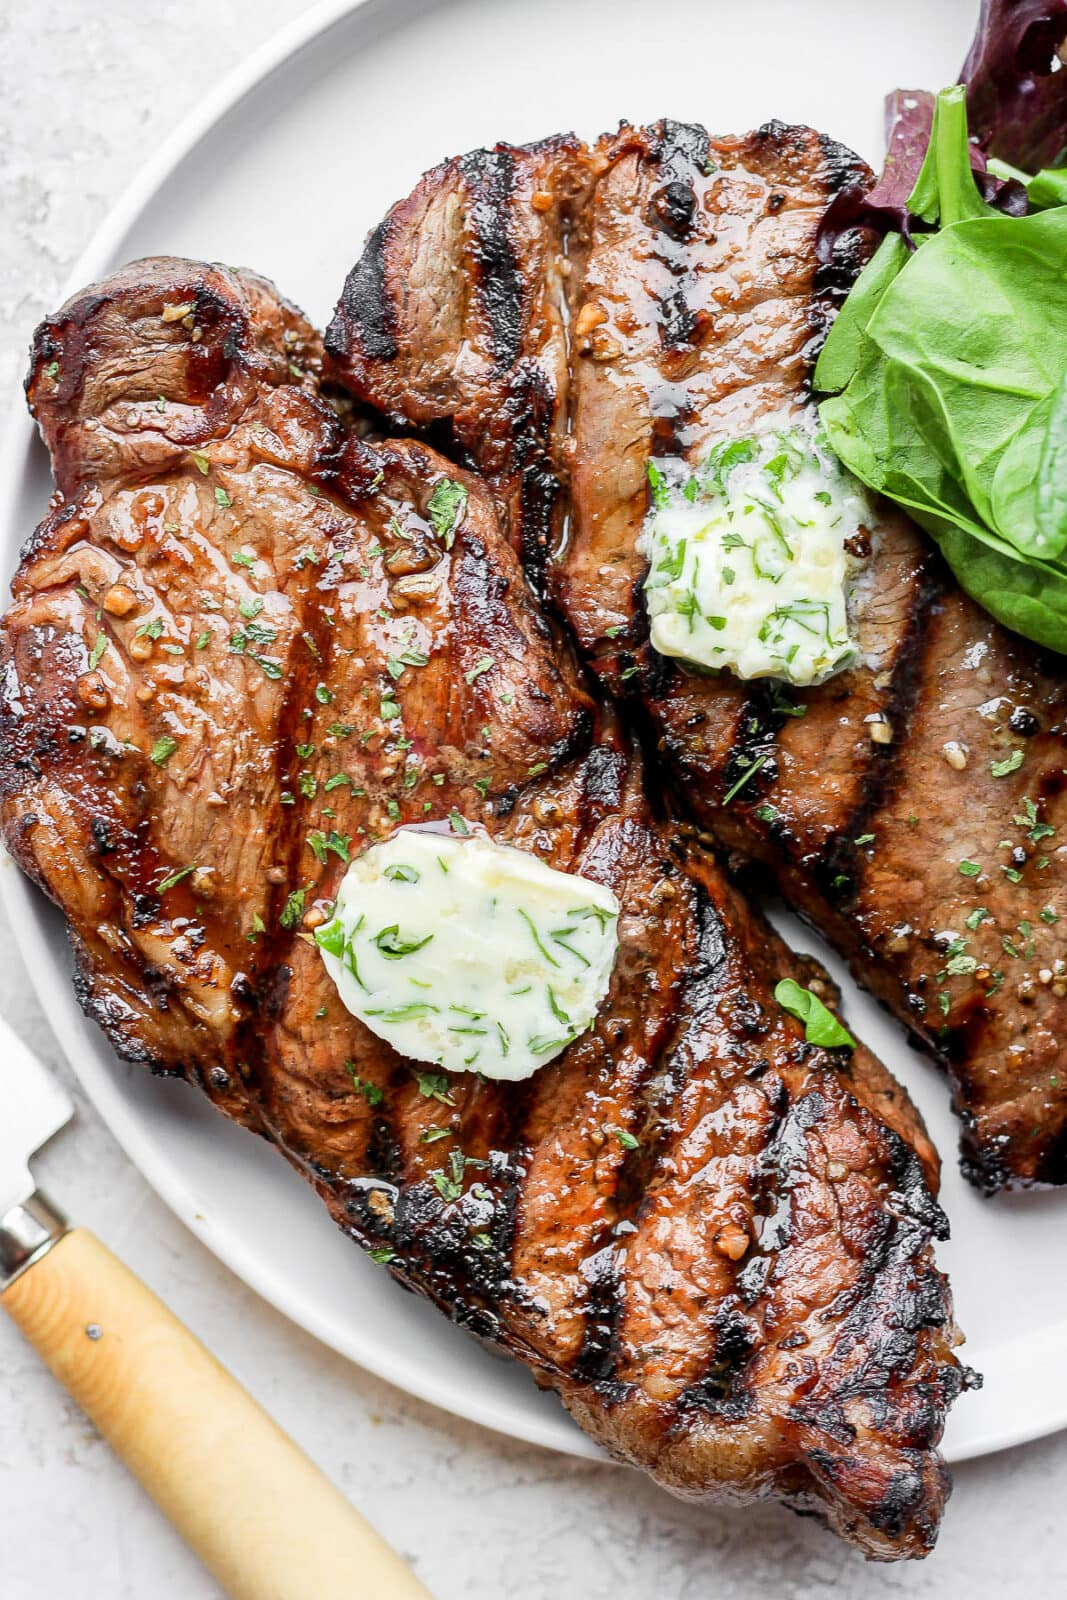 Two steaks with herbed butter on top on a plate.